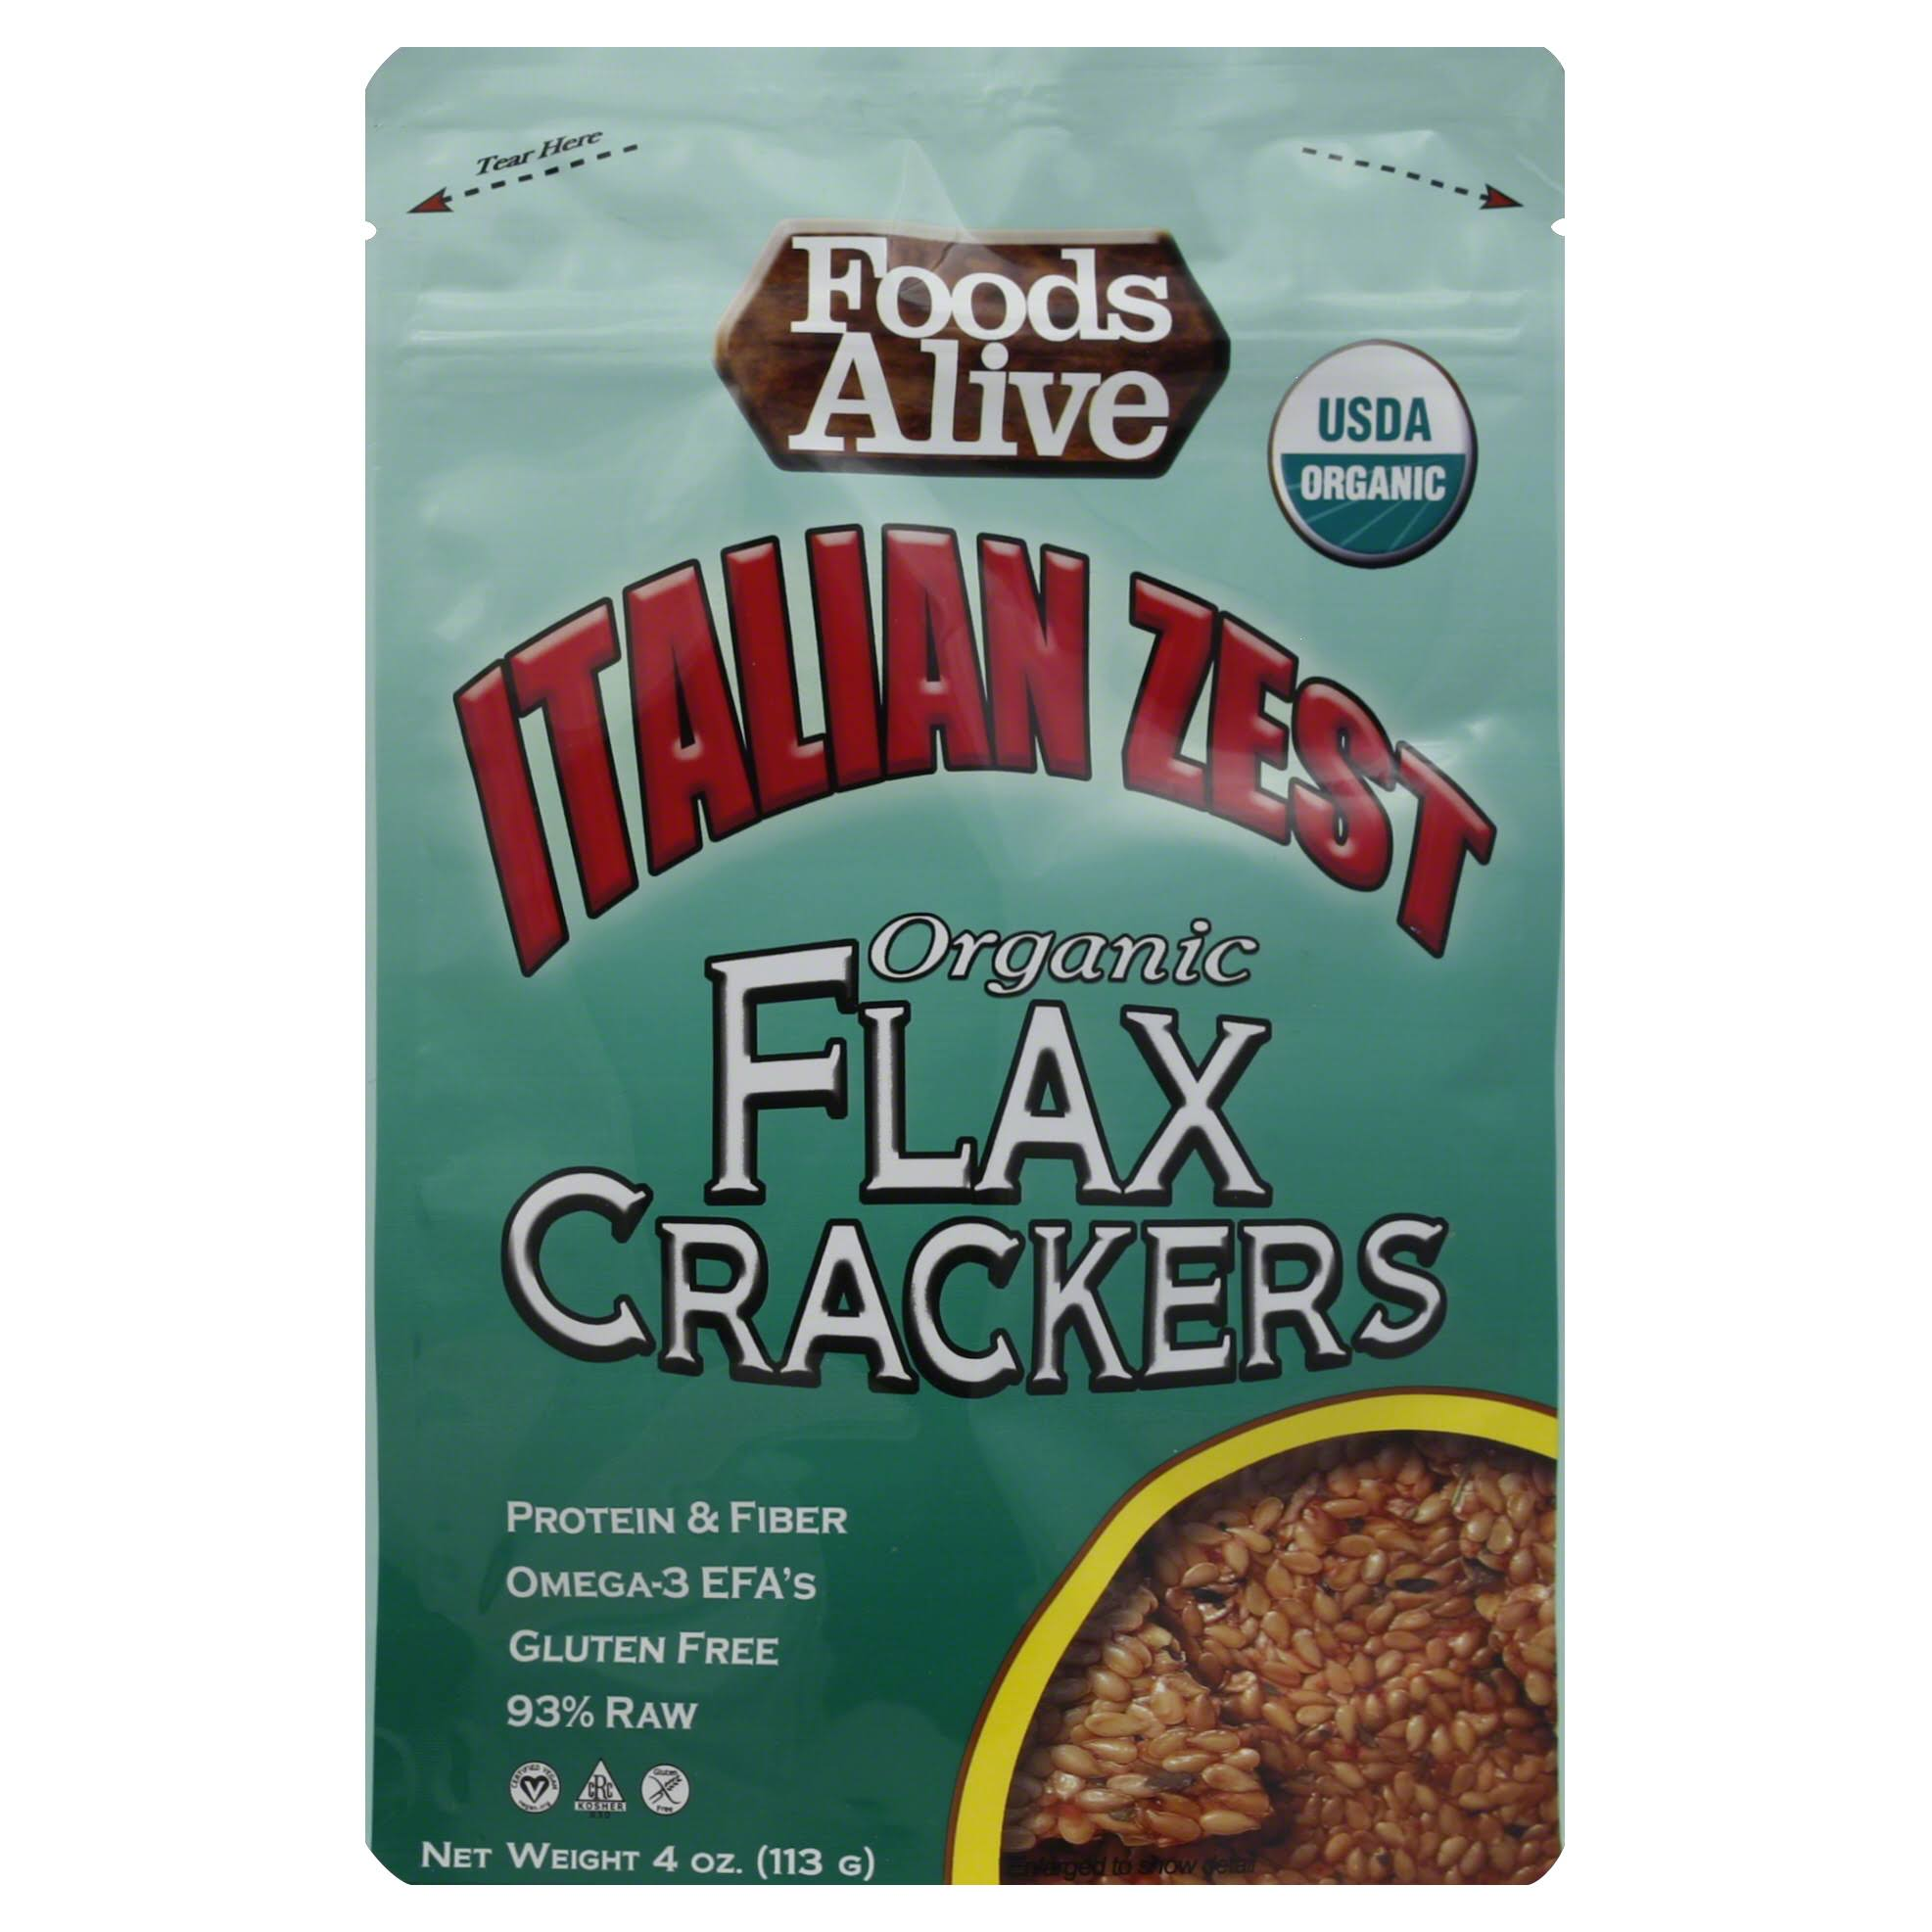 Foods Alive Golden Flax Crackers - Italian Zest, 4oz